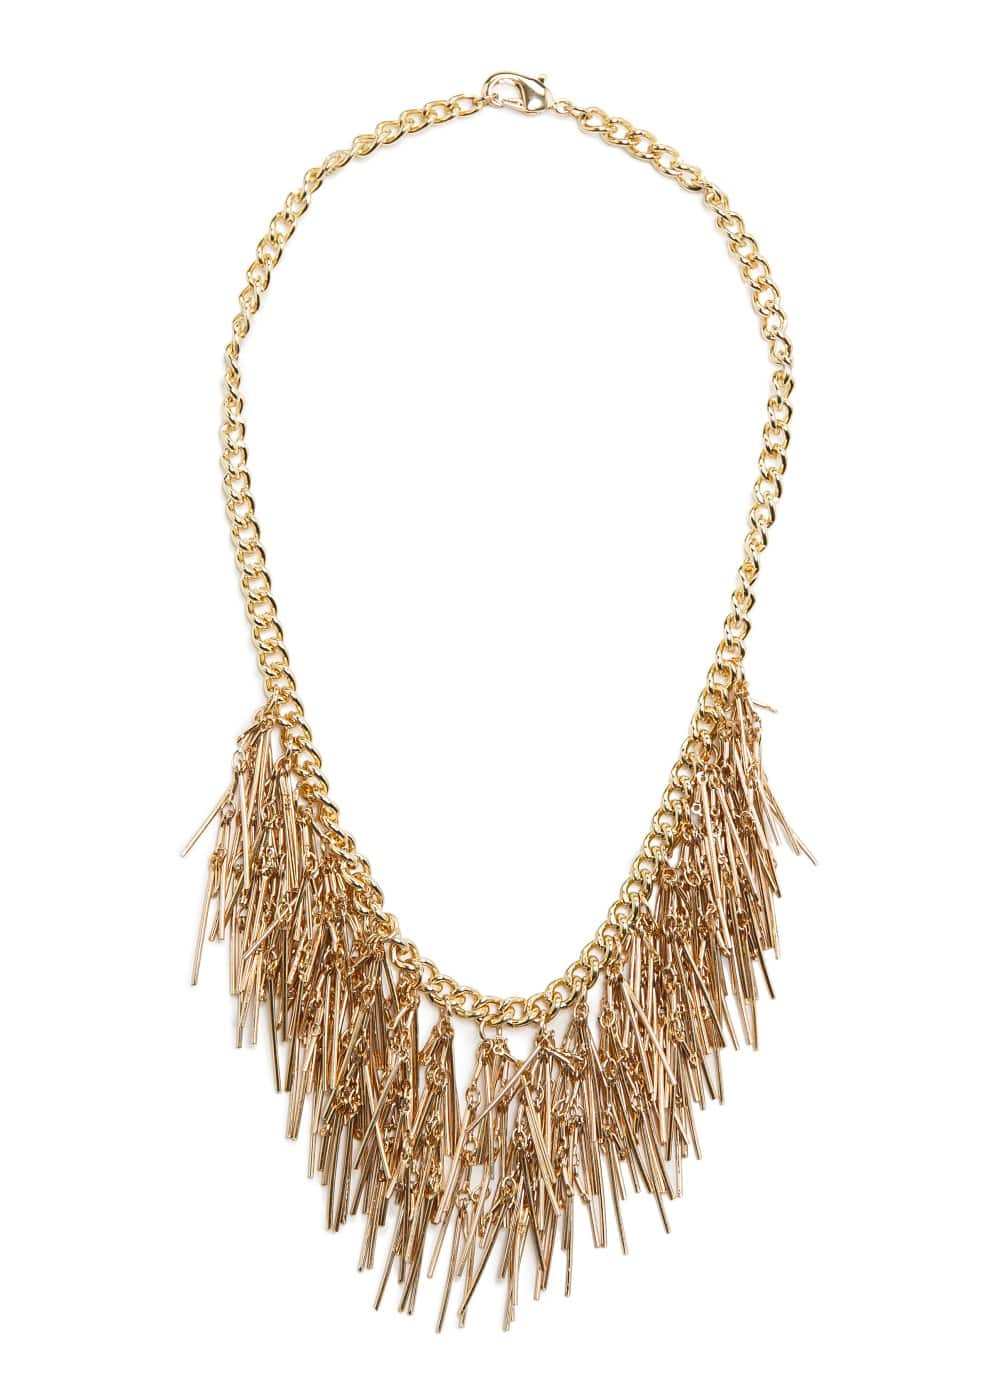 Waterfall piece necklace